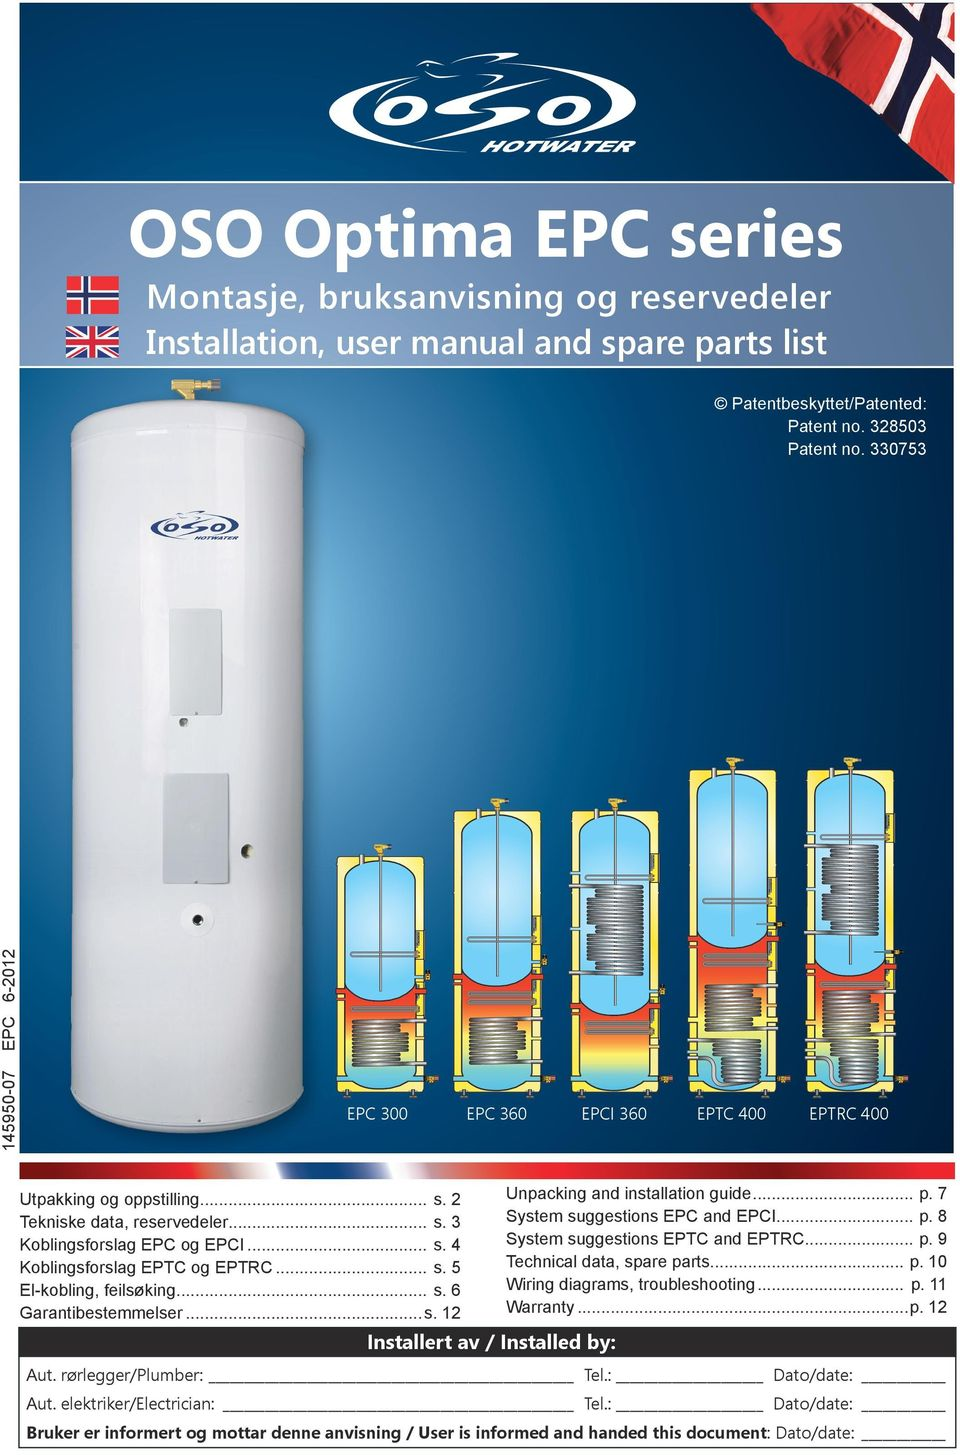 .. s. 6 Garantibestemmelser...s. Installert av / Installed by: Unpacking and installation guide... p. 7 System suggestions EPC and EPCI... p. 8 System suggestions EPTC and EPTRC... p. 9 Technical data, spare parts.